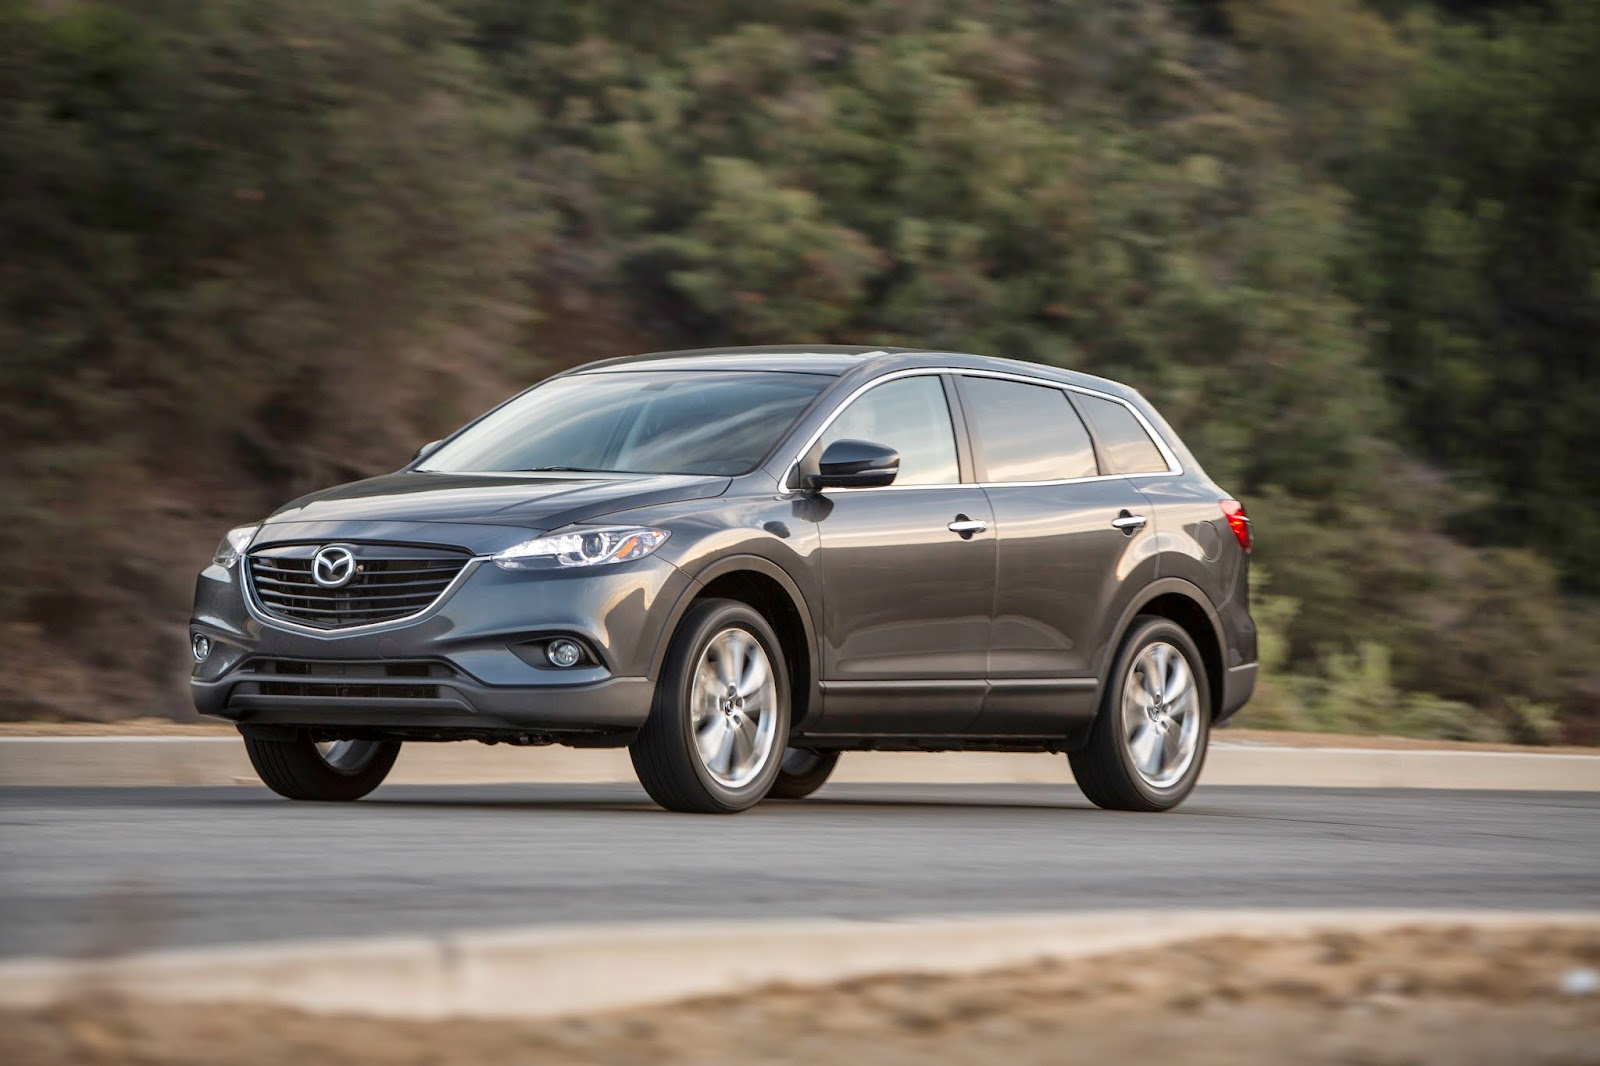 Front 3/4 view of 2015 Mazda CX-9